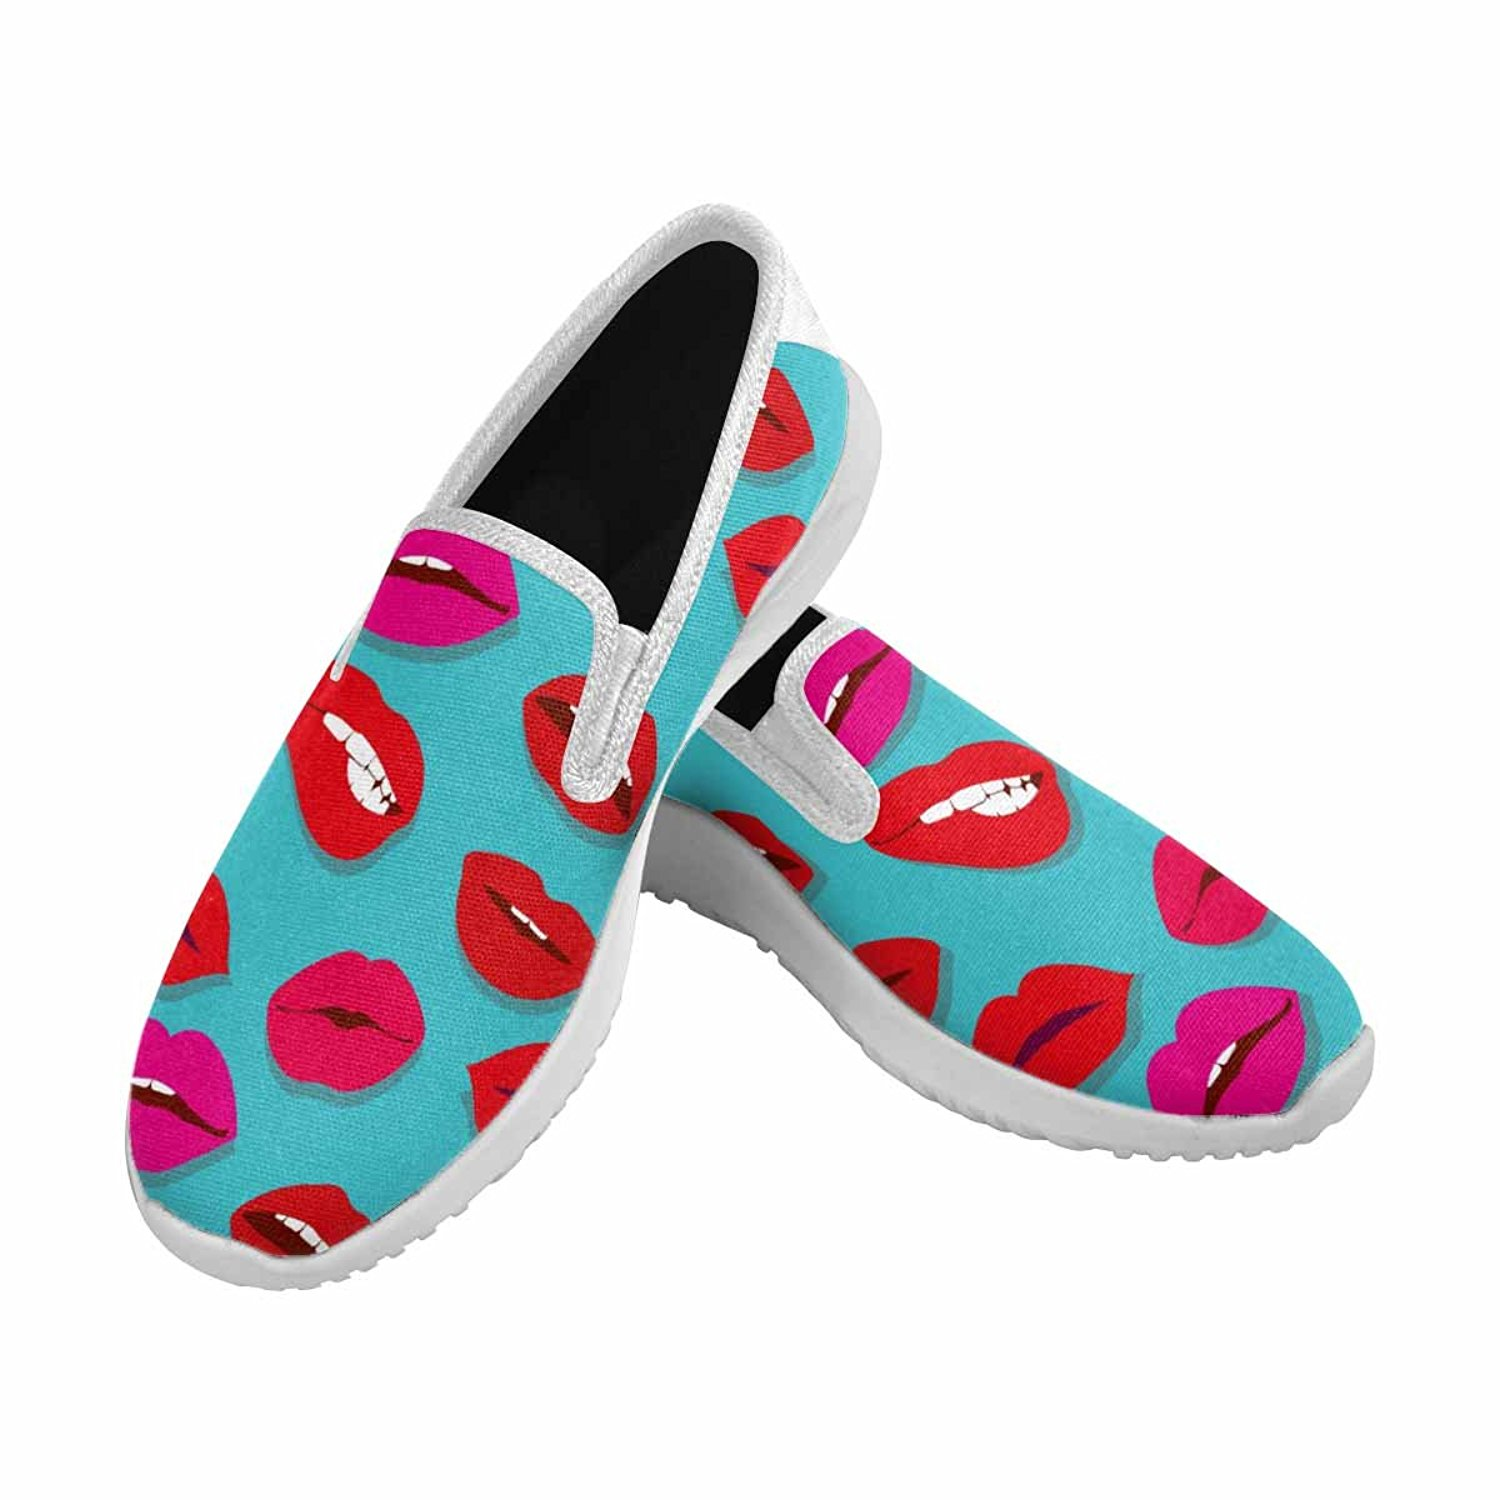 e02fc85cd07e0 InterestPrint Women's Slip-On Canvas Loafer Shoes Fashion Sneakers Makeup  and Cosmetics Pattern with Red Woman Lips, Flat Sexy Lips Fashion Background